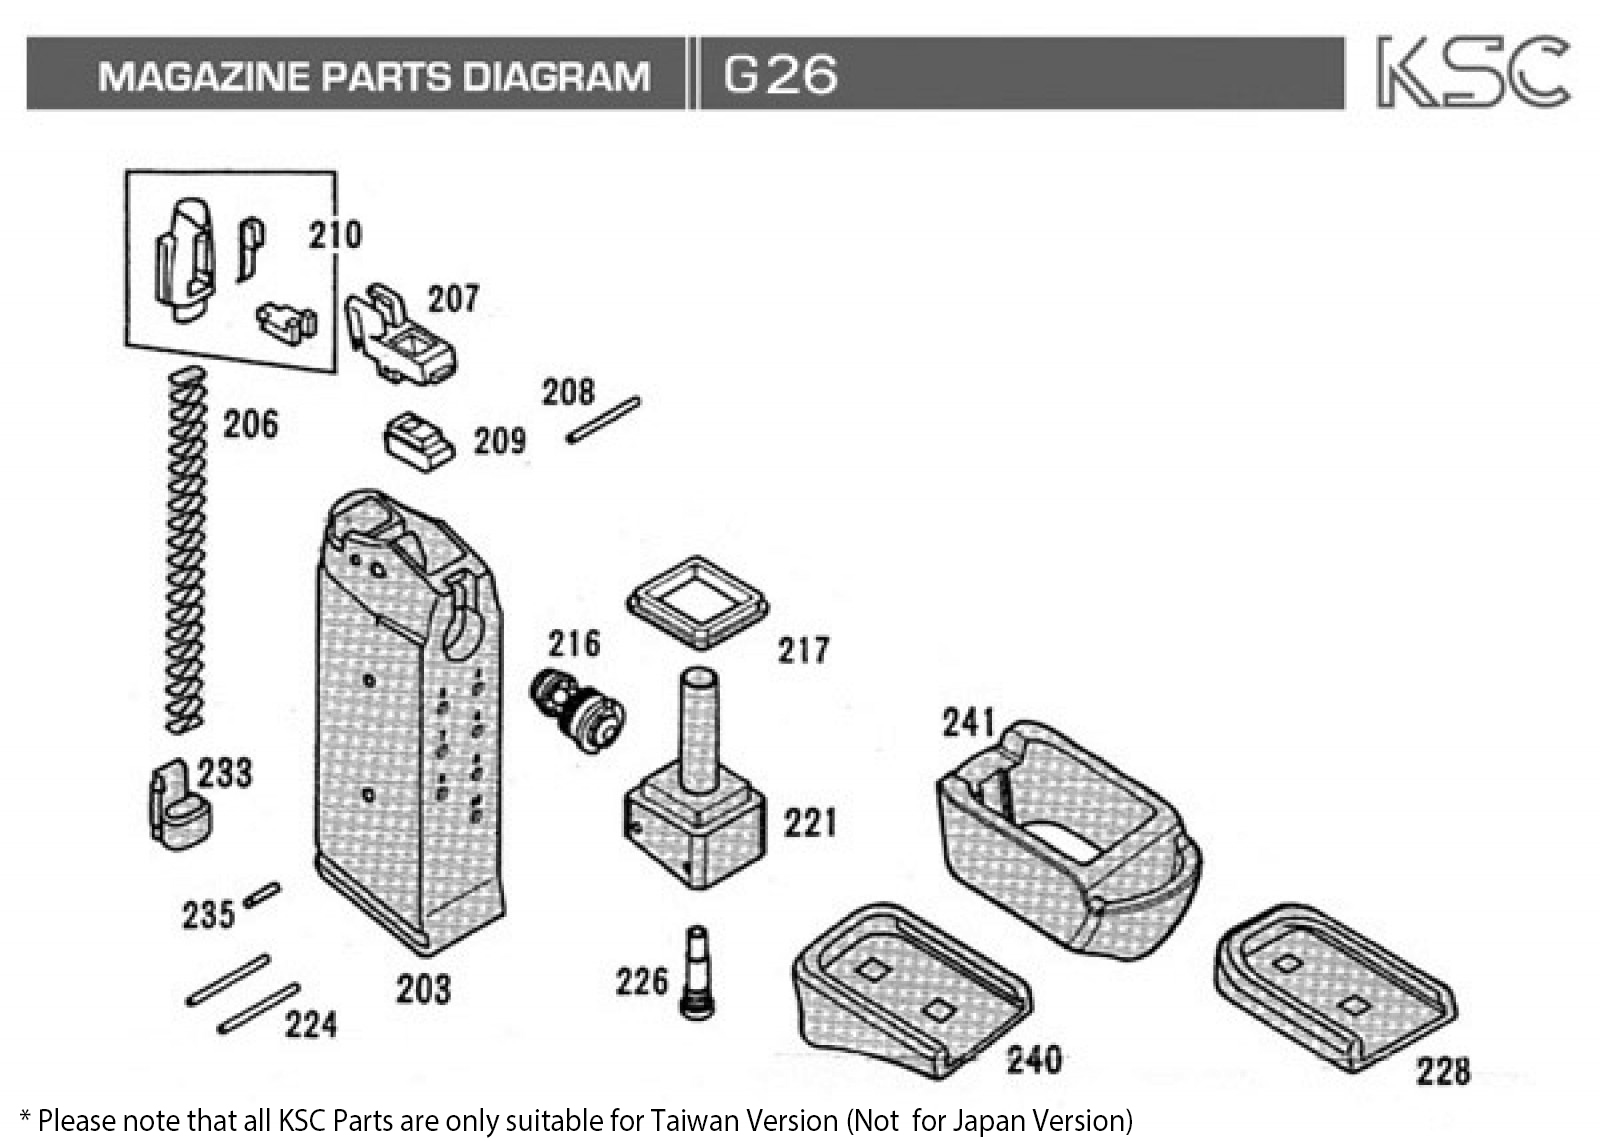 Ksc products magazine diagram ccuart Image collections